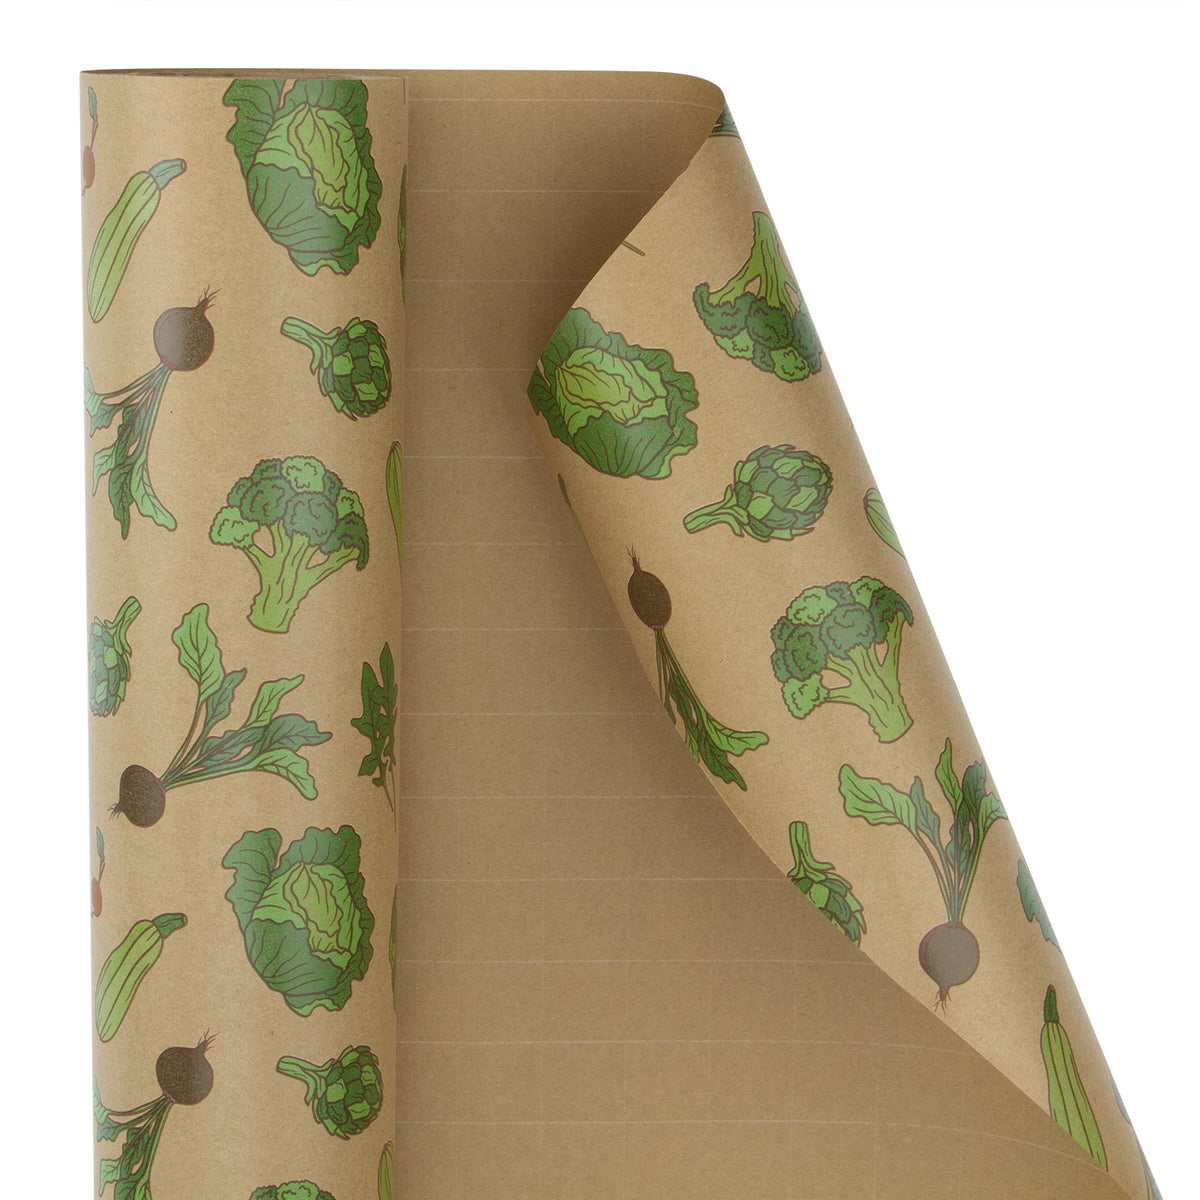 Wrapaholic-Vegetable-Kraft-Gift-Wrapping-Paper-4